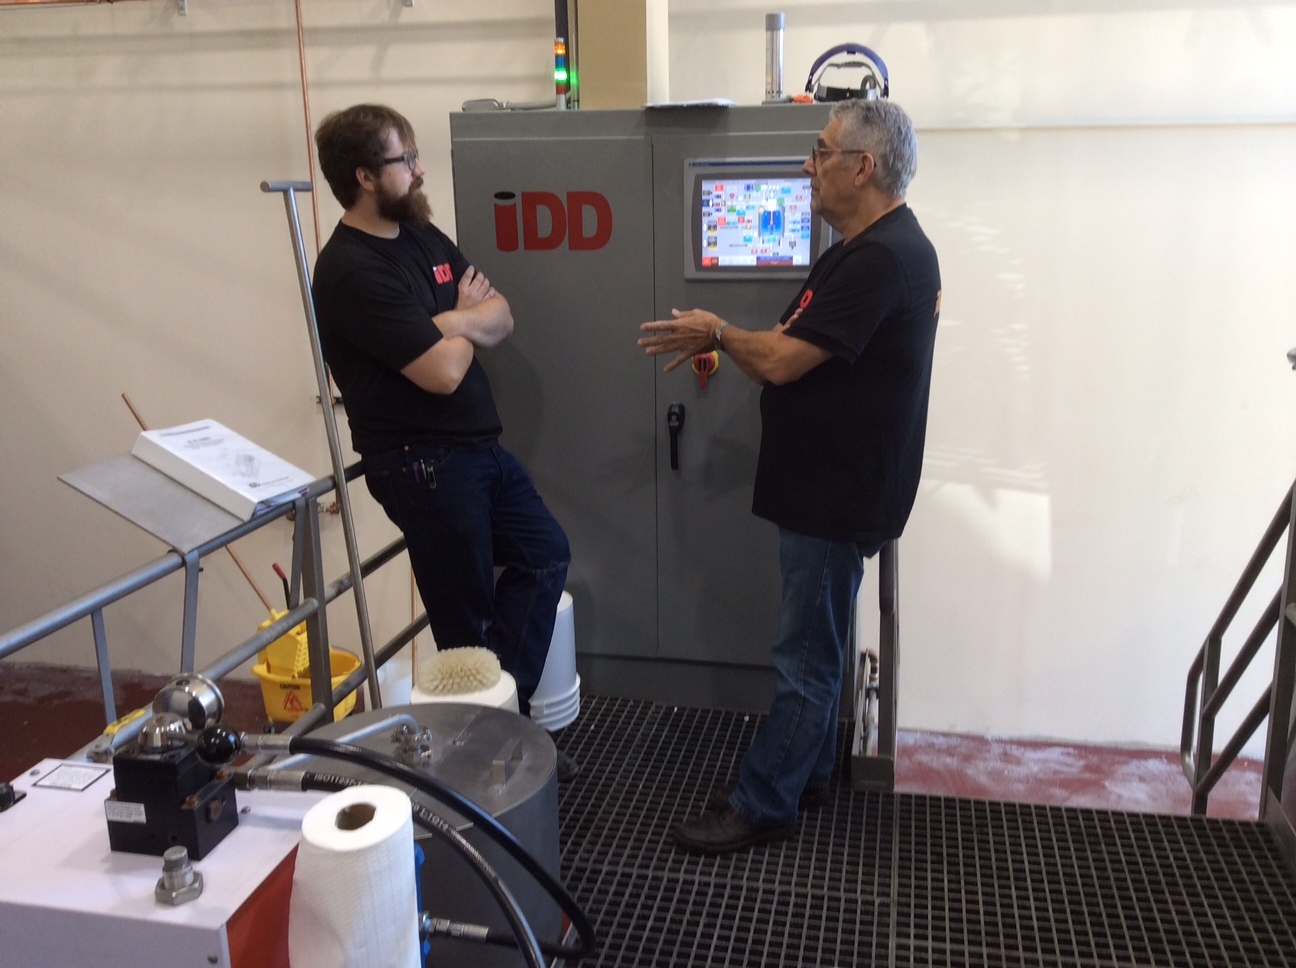 Jeff Gunn, owner of IDD, brought his crew out to help with the first brew and to make sure the equipment is working properly. Success!